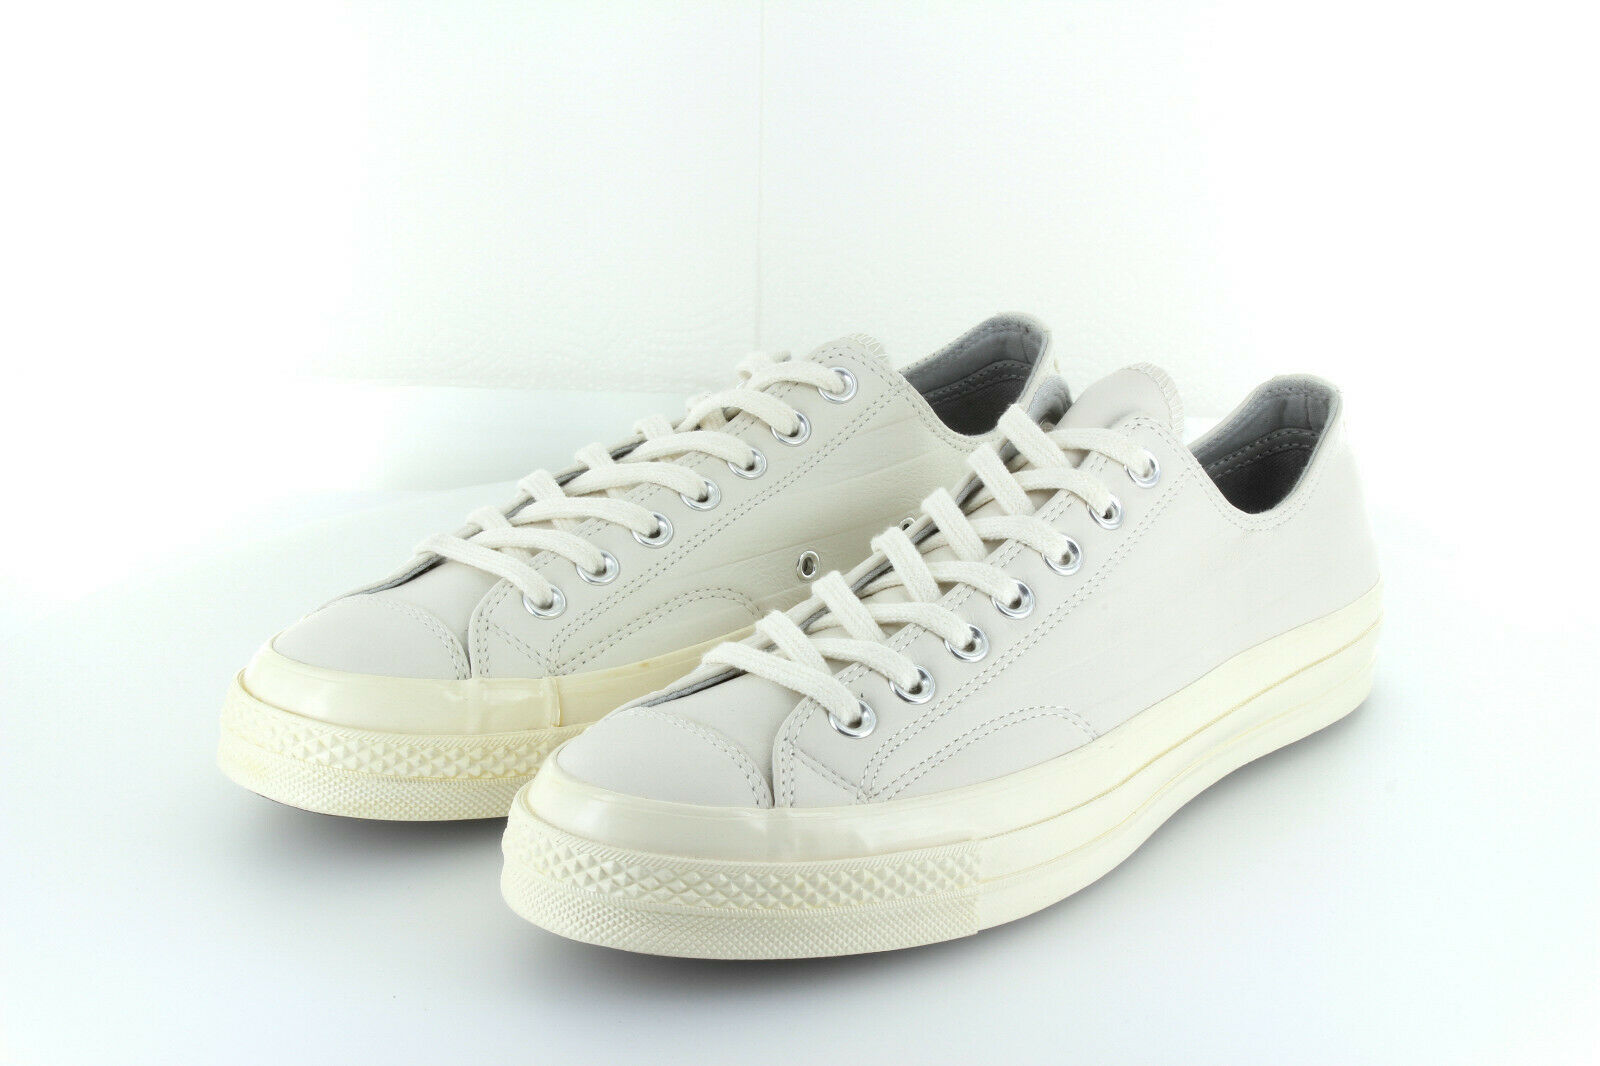 Converse CT AS OX 70 S blanc Crème cuir Limited Edition 42,5 43,5 US 9